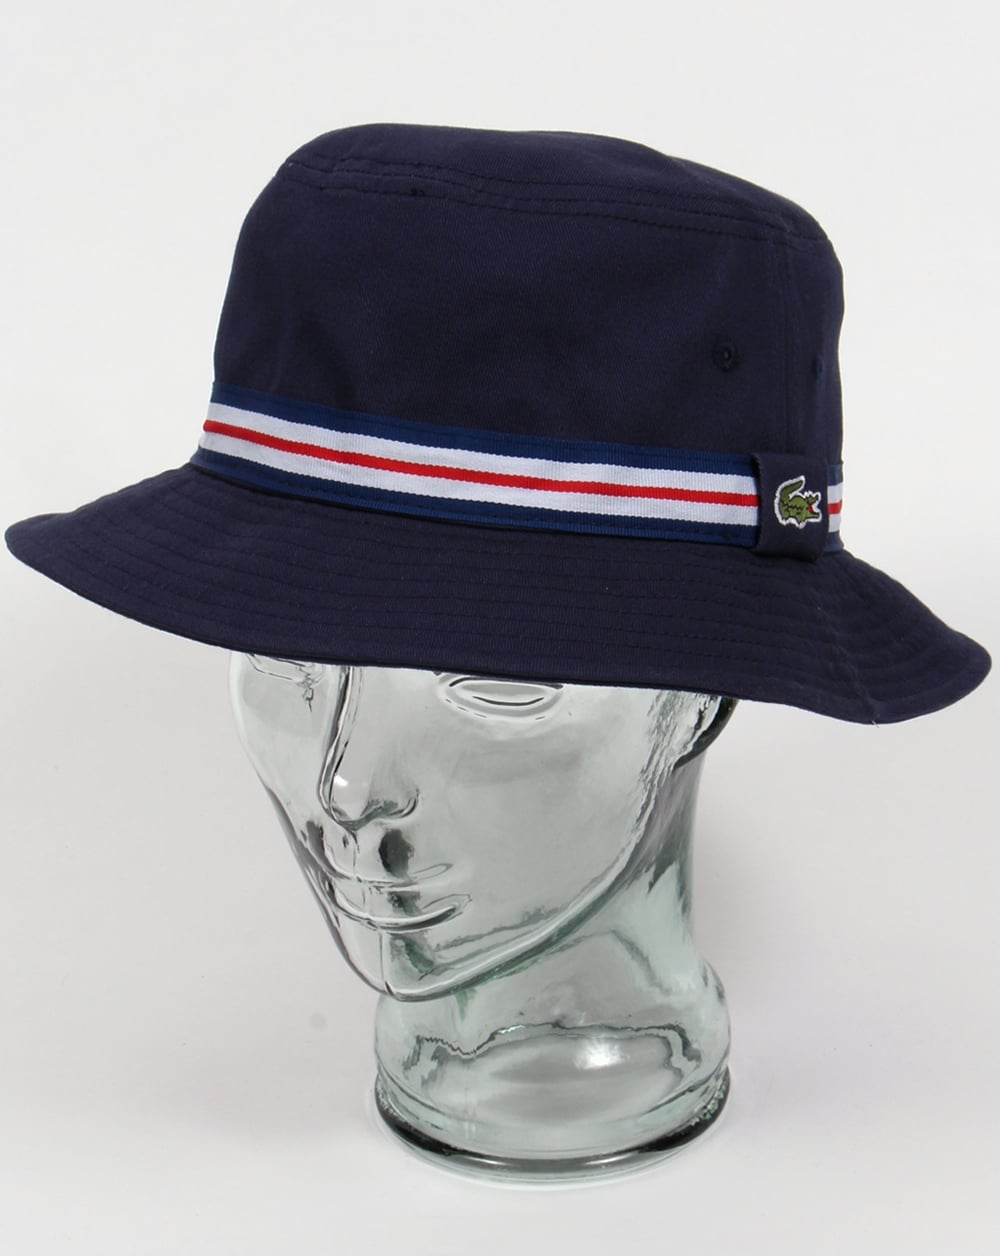 Lacoste Lacoste Bucket Sun Hat Navy with trim 517a31e7fbe